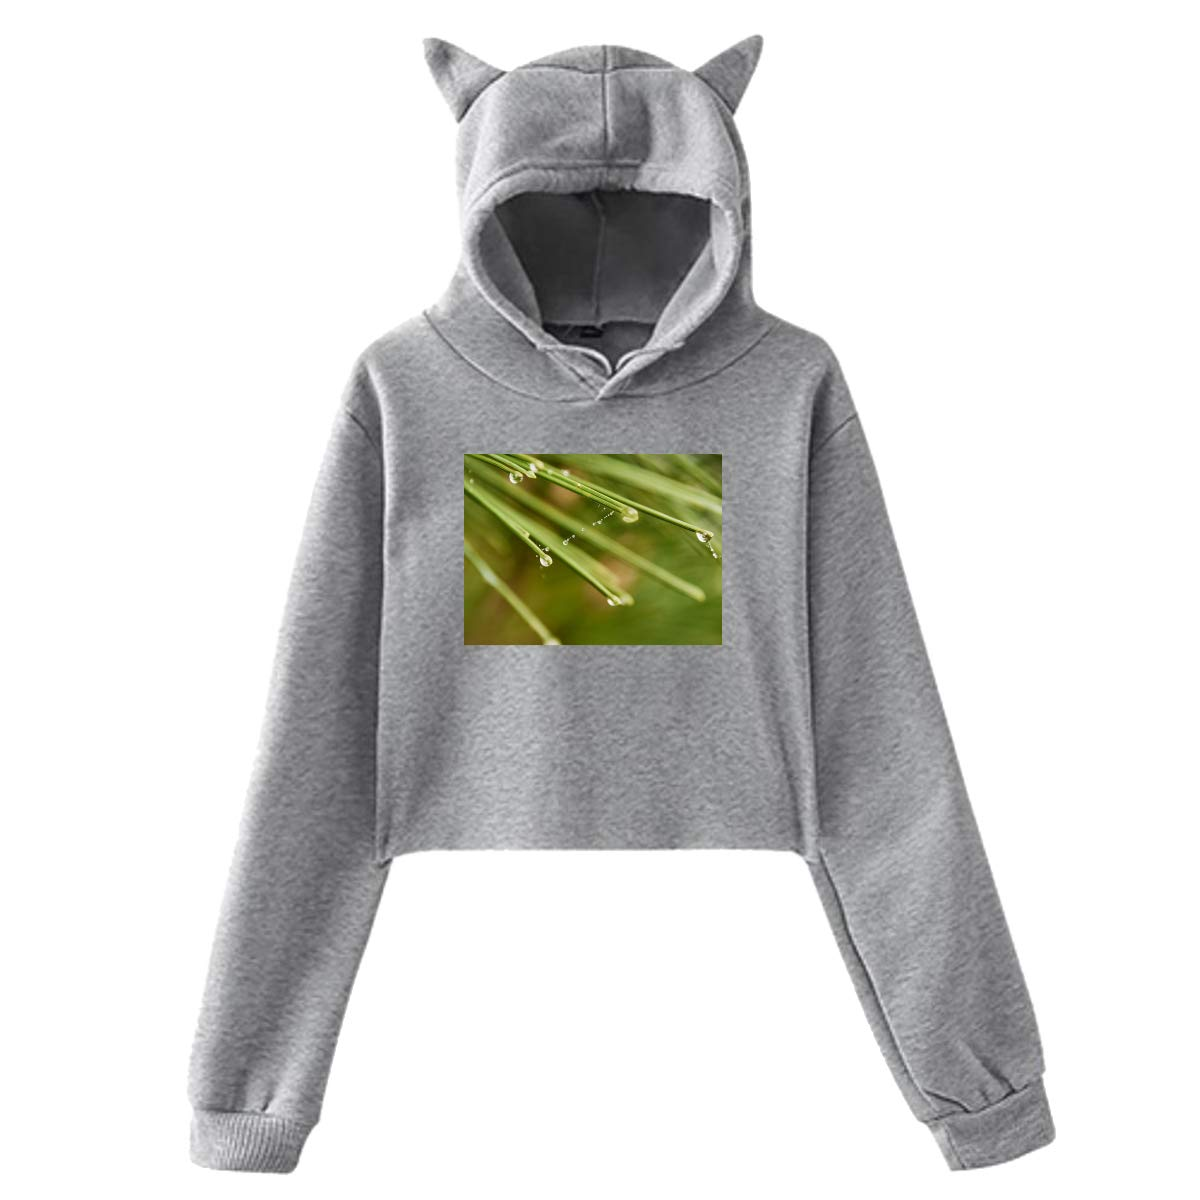 Personality Leaf Girl Cat Ears Umbilical Hoodie,Leaf Fashion Sweatshirt Sweater